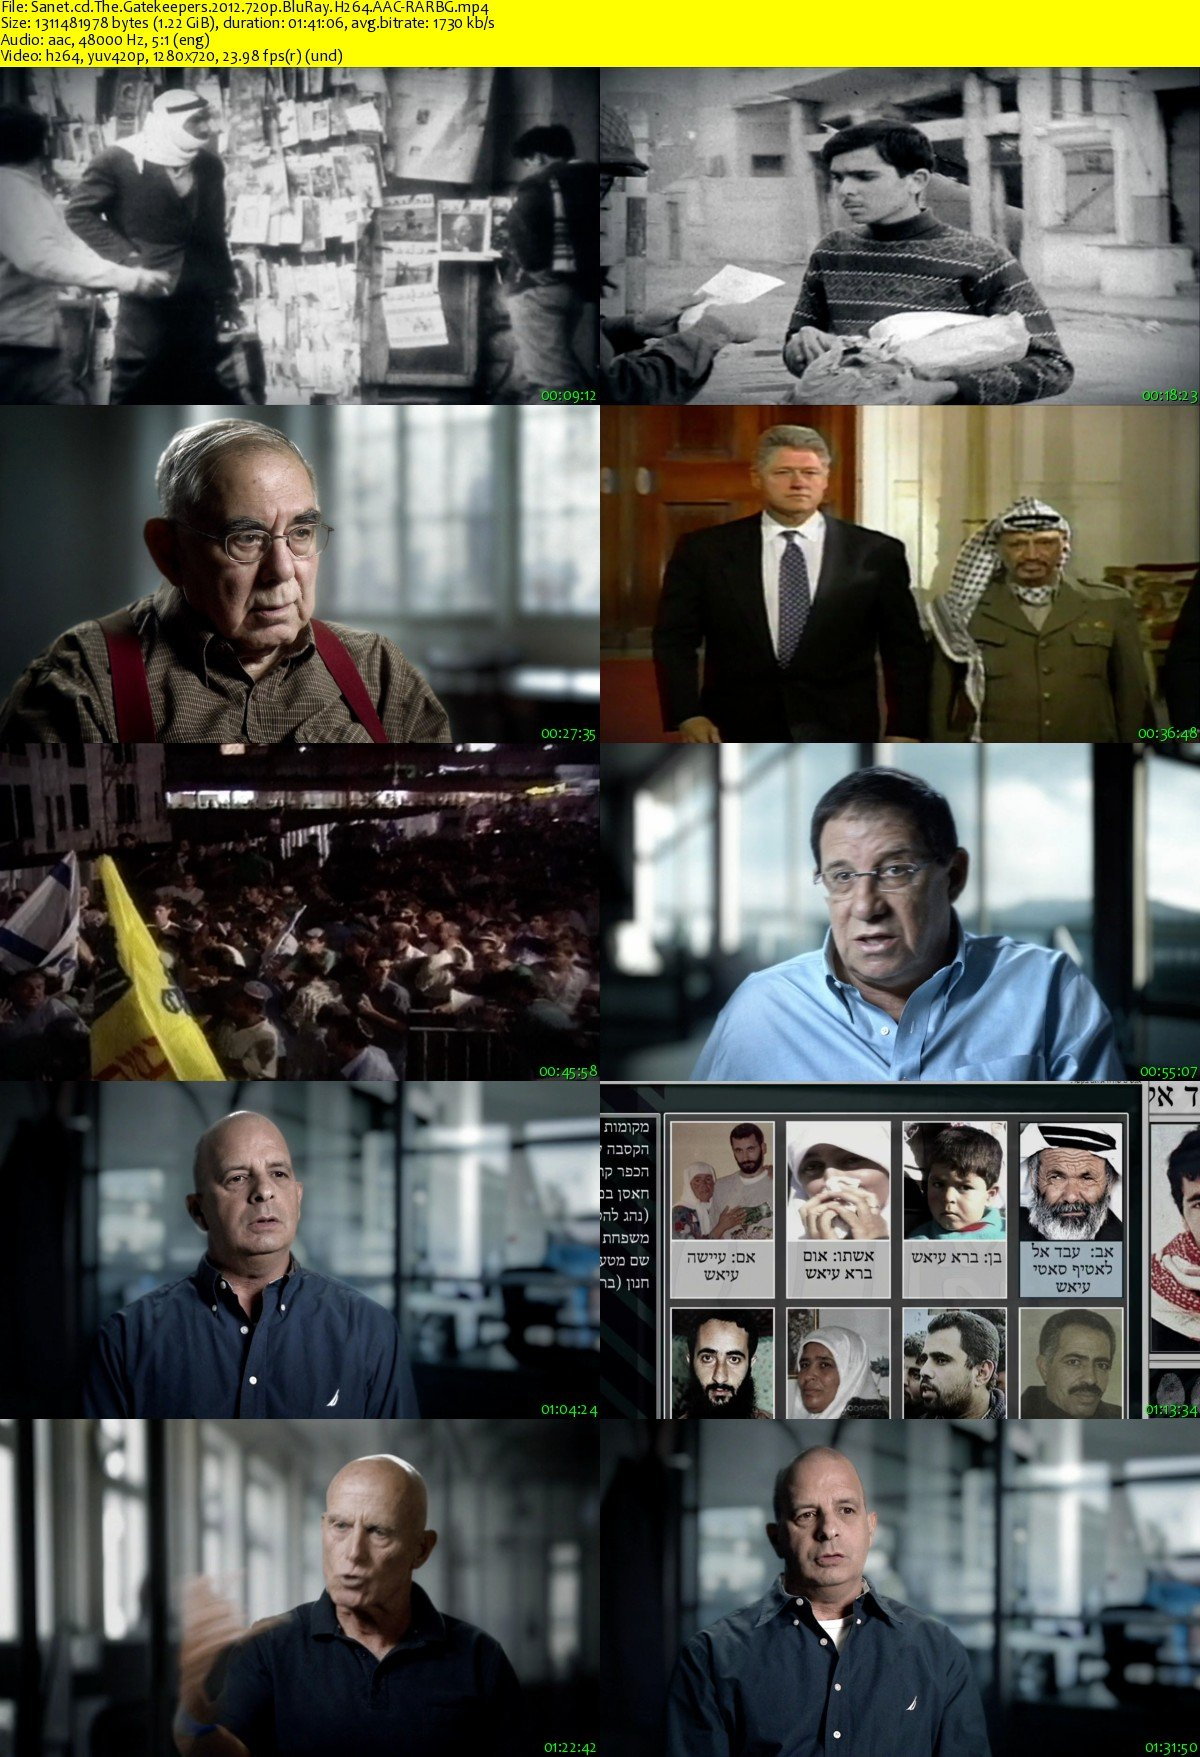 the gatekeepers 2012 documentary downloads